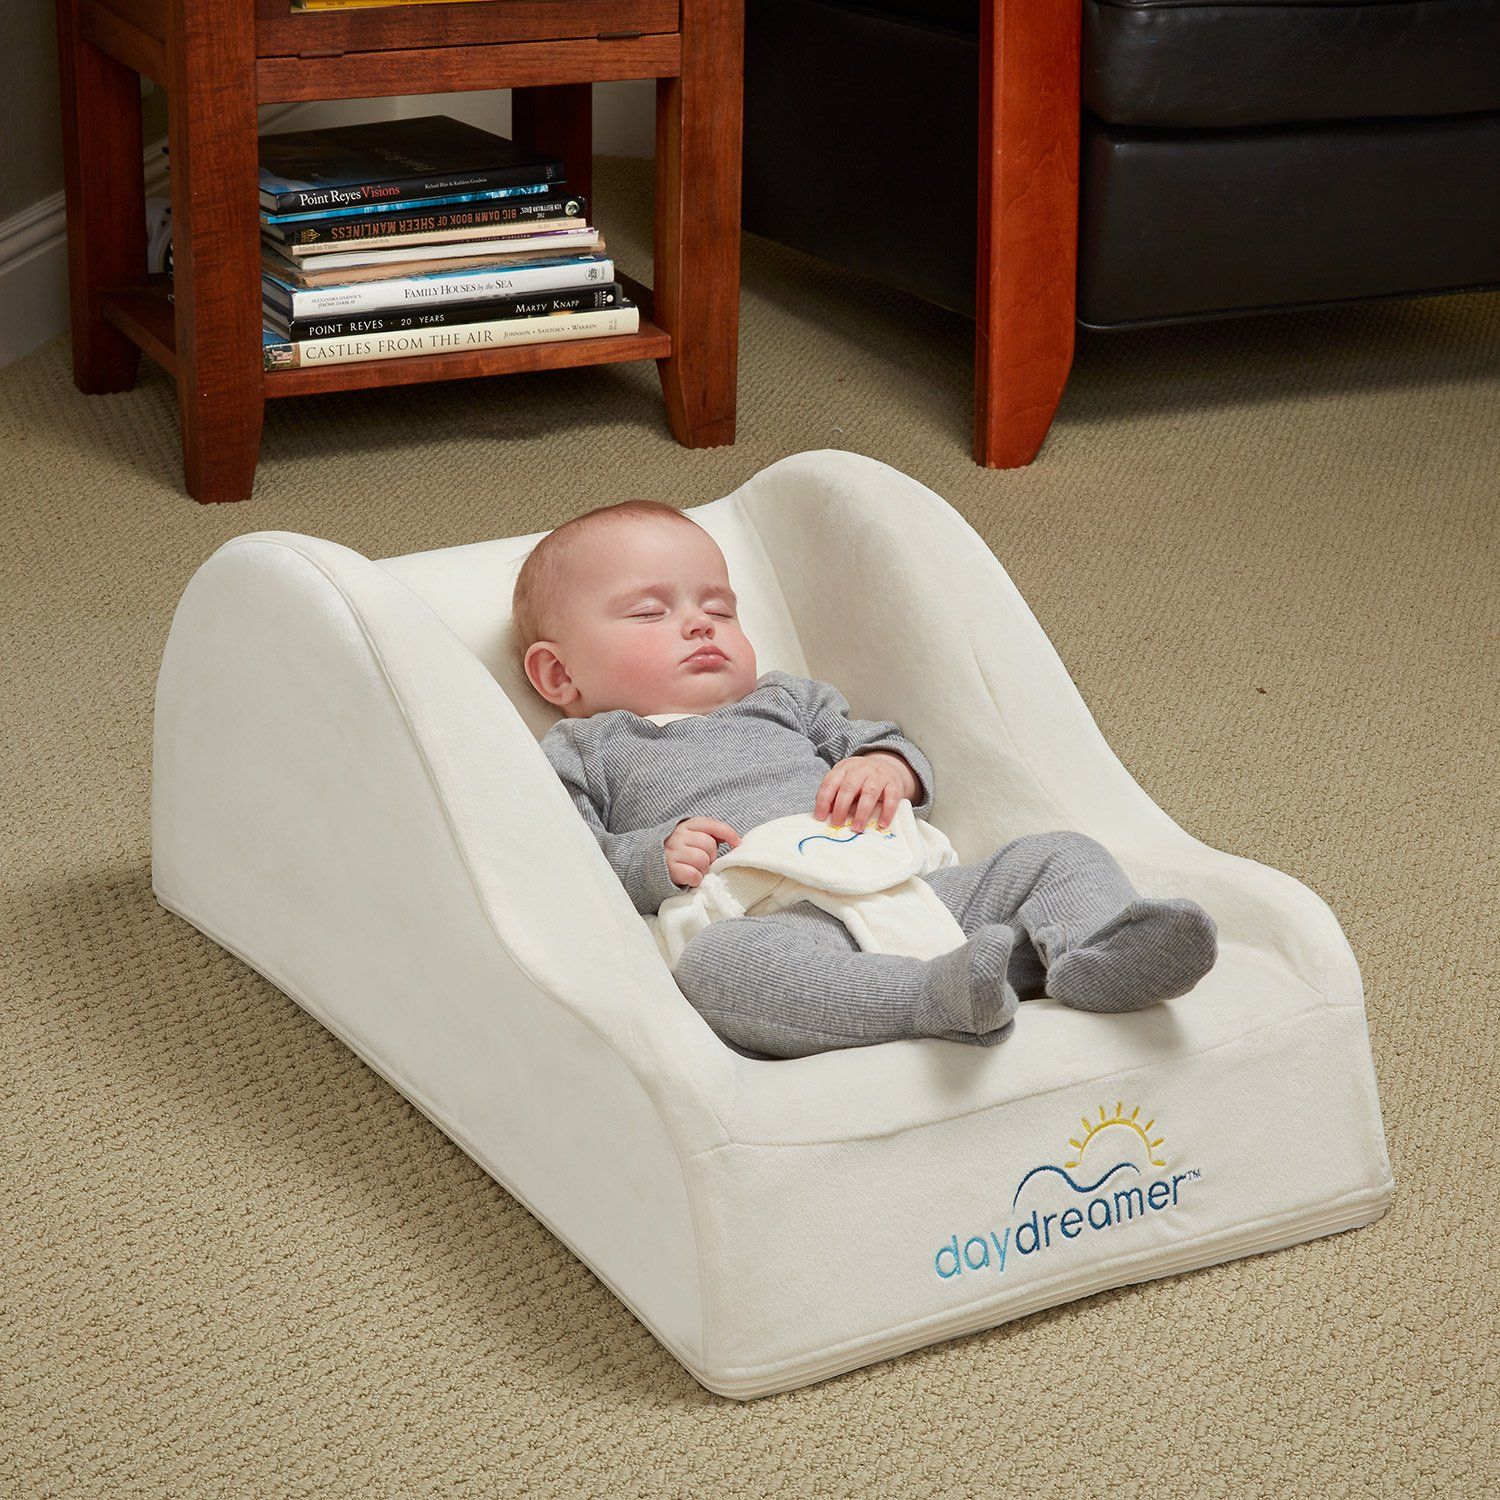 Newborn Bassinet Reflux Pin On Floor Seats Loungers